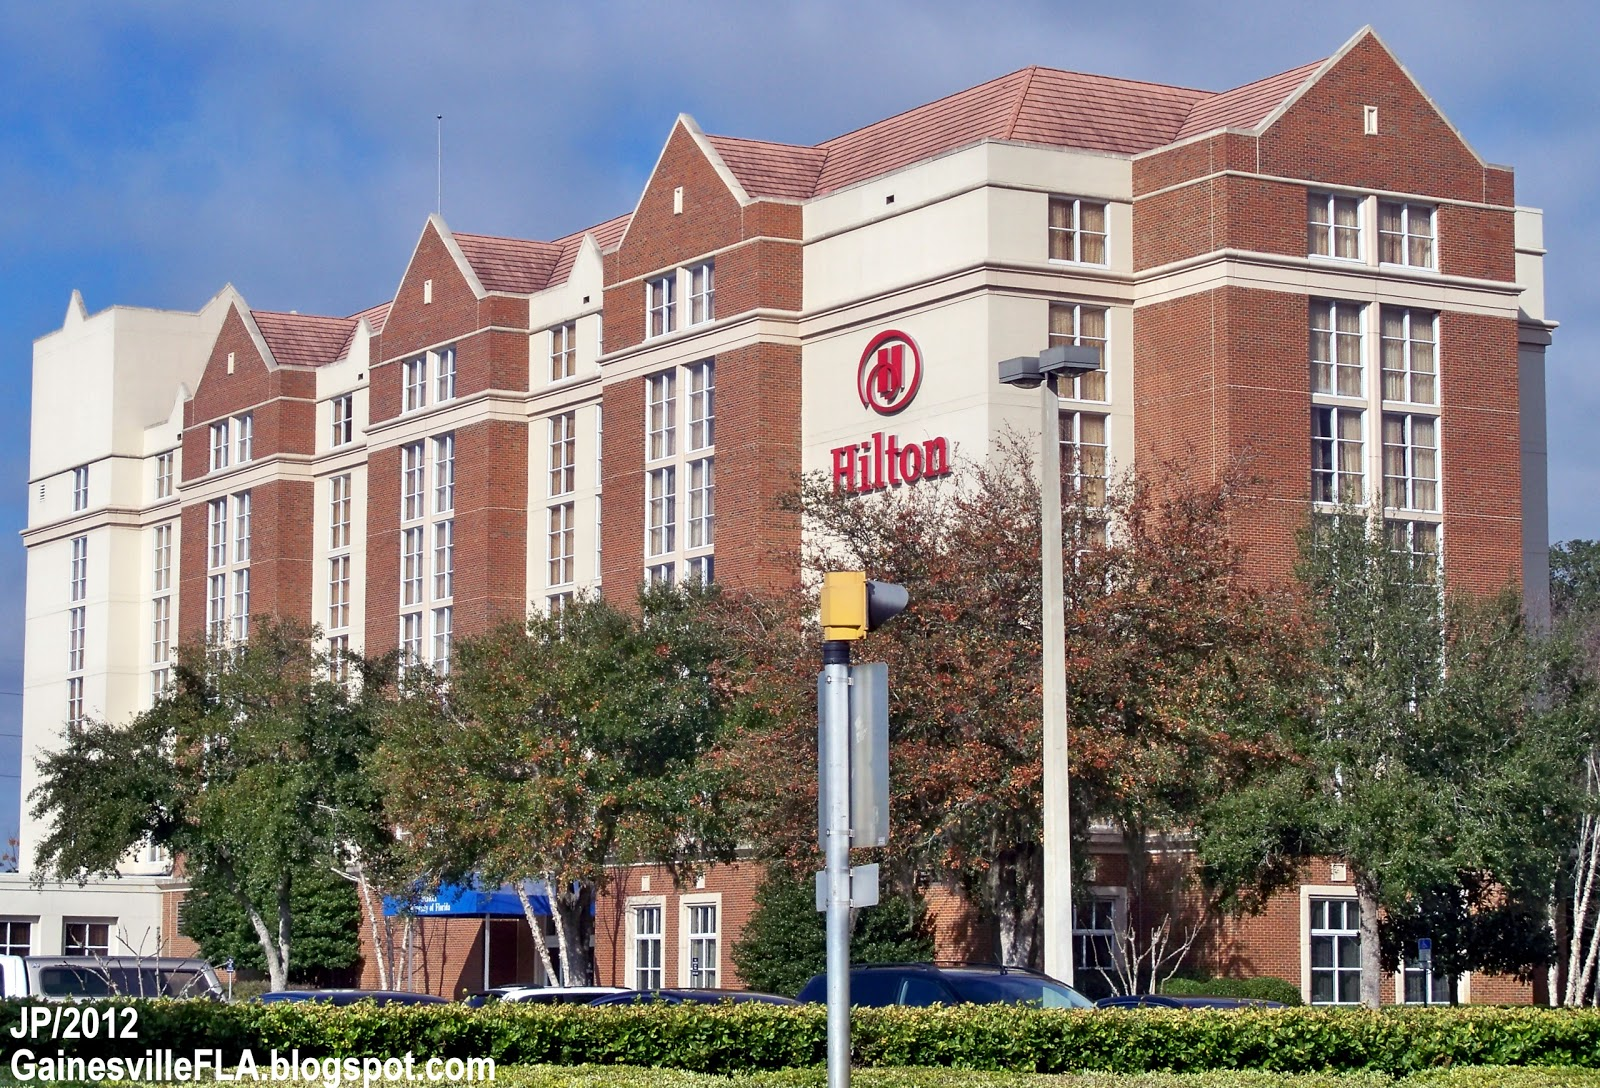 Hilton Hotel Gainesville Florida Sw 34th St University Of Fl Conference Center Lodging Uf Alachua County